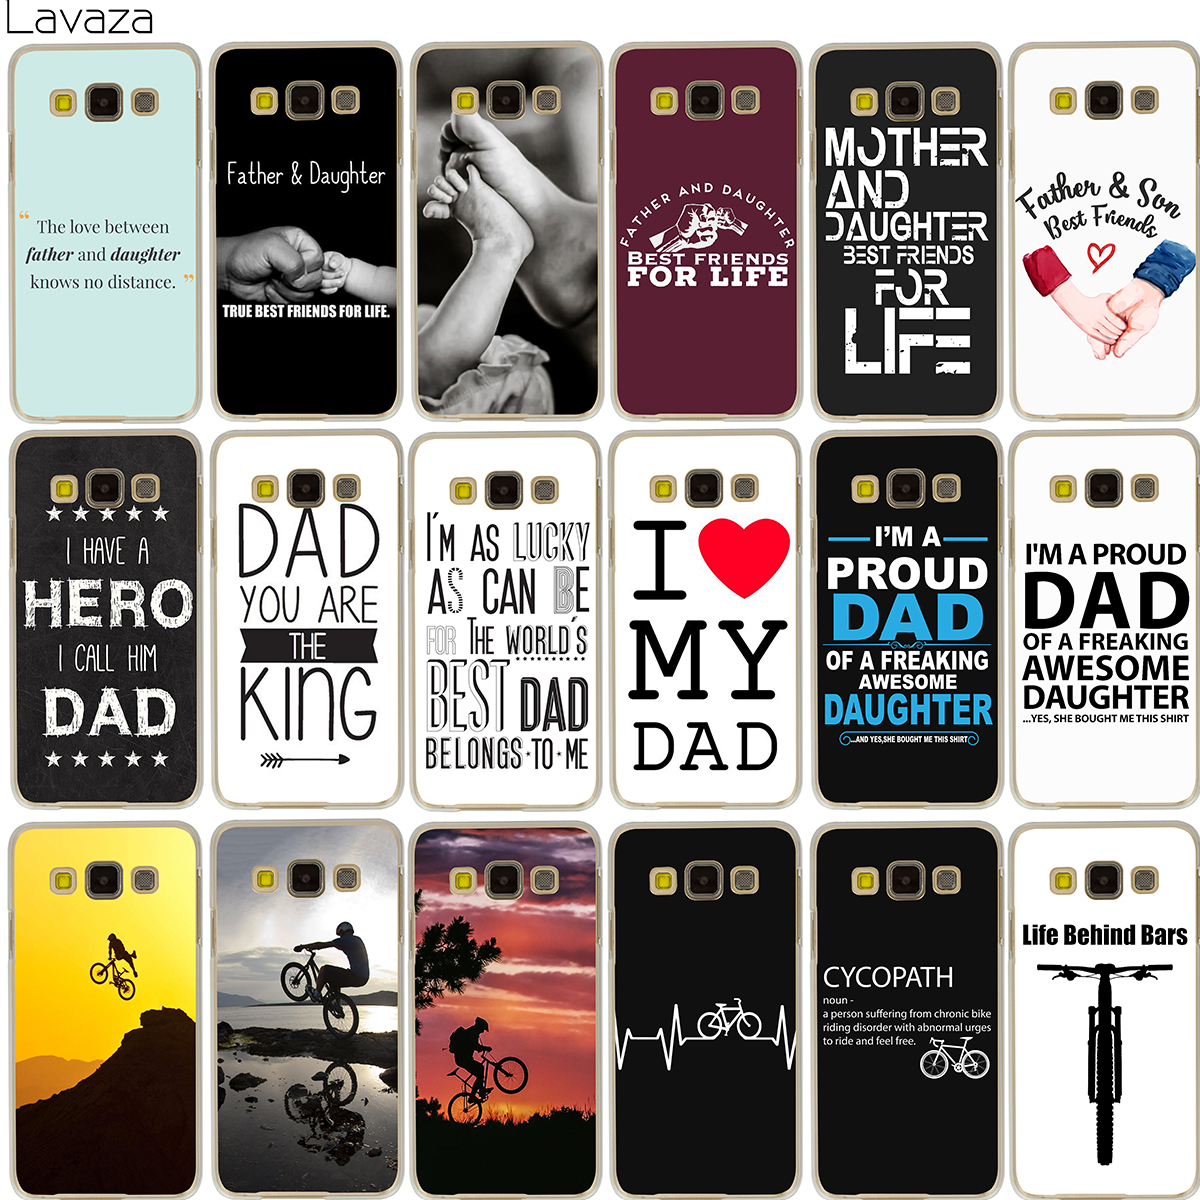 63cfdce13a6 Lavaza Family Daddy And Daughter Son I'm A Proud Dad Case for iPhone XS Max  XR X 8 7 6 6S Plus 5 5S SE